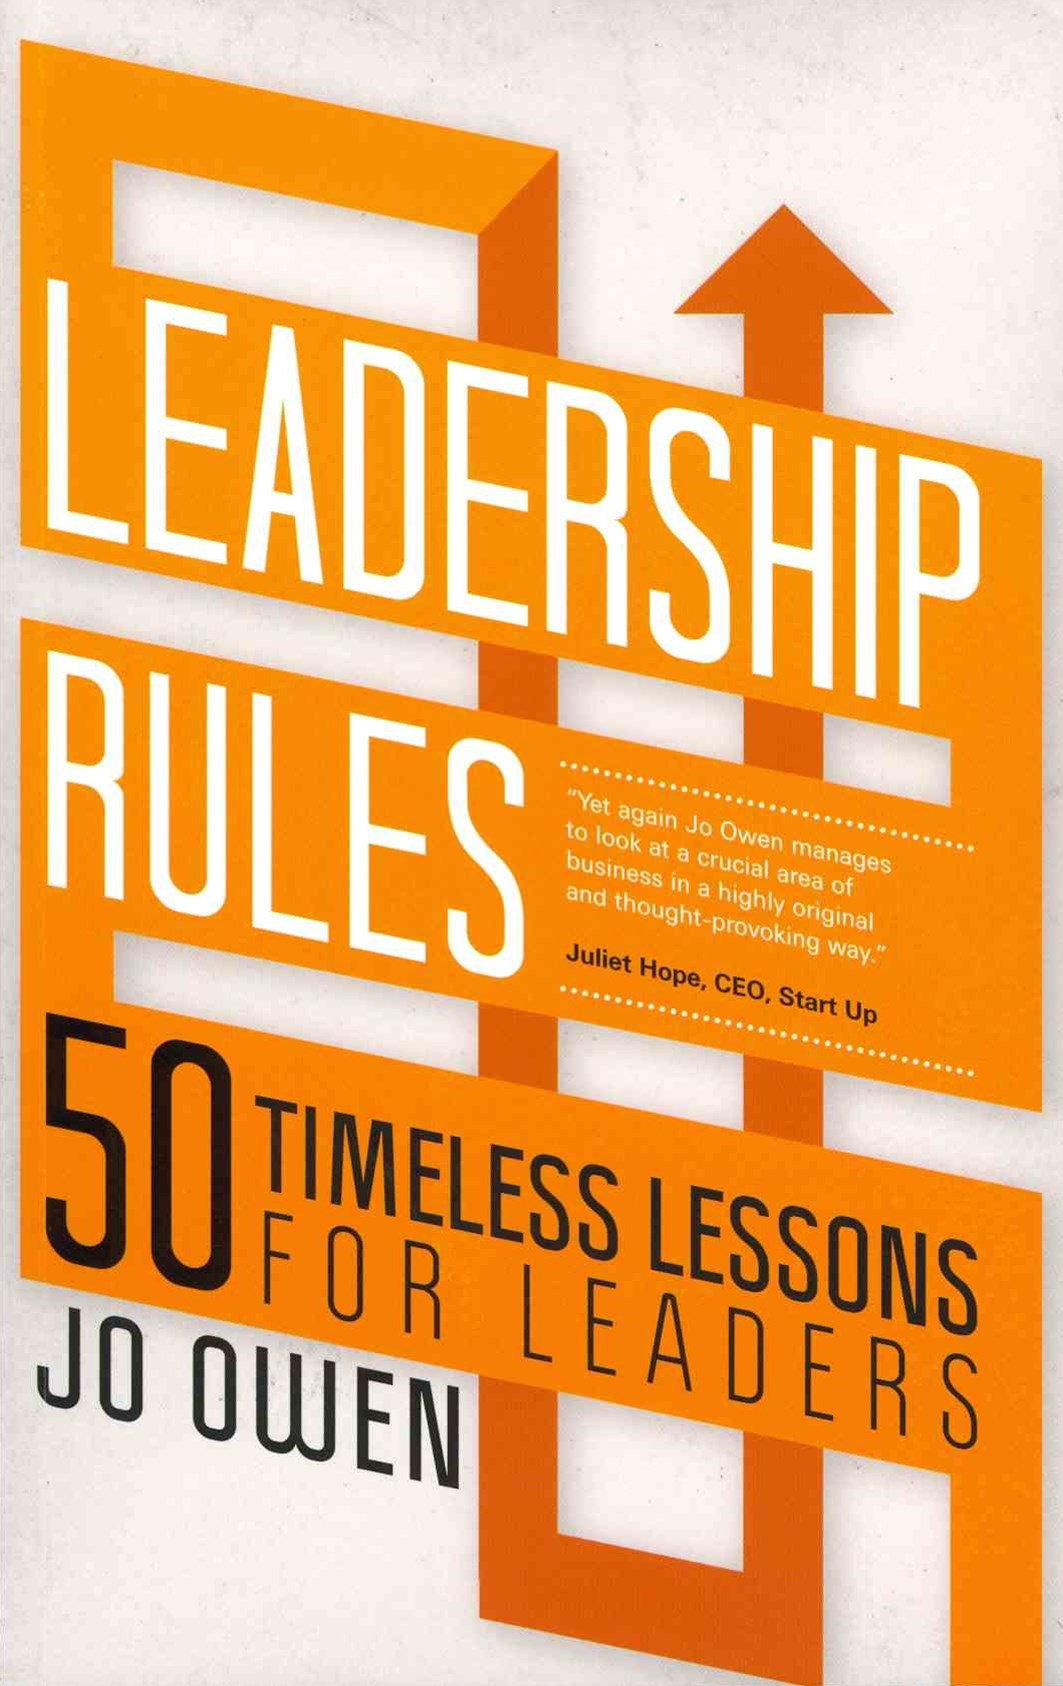 Leadership Rules - 50 Timeless Lessons for Leaders